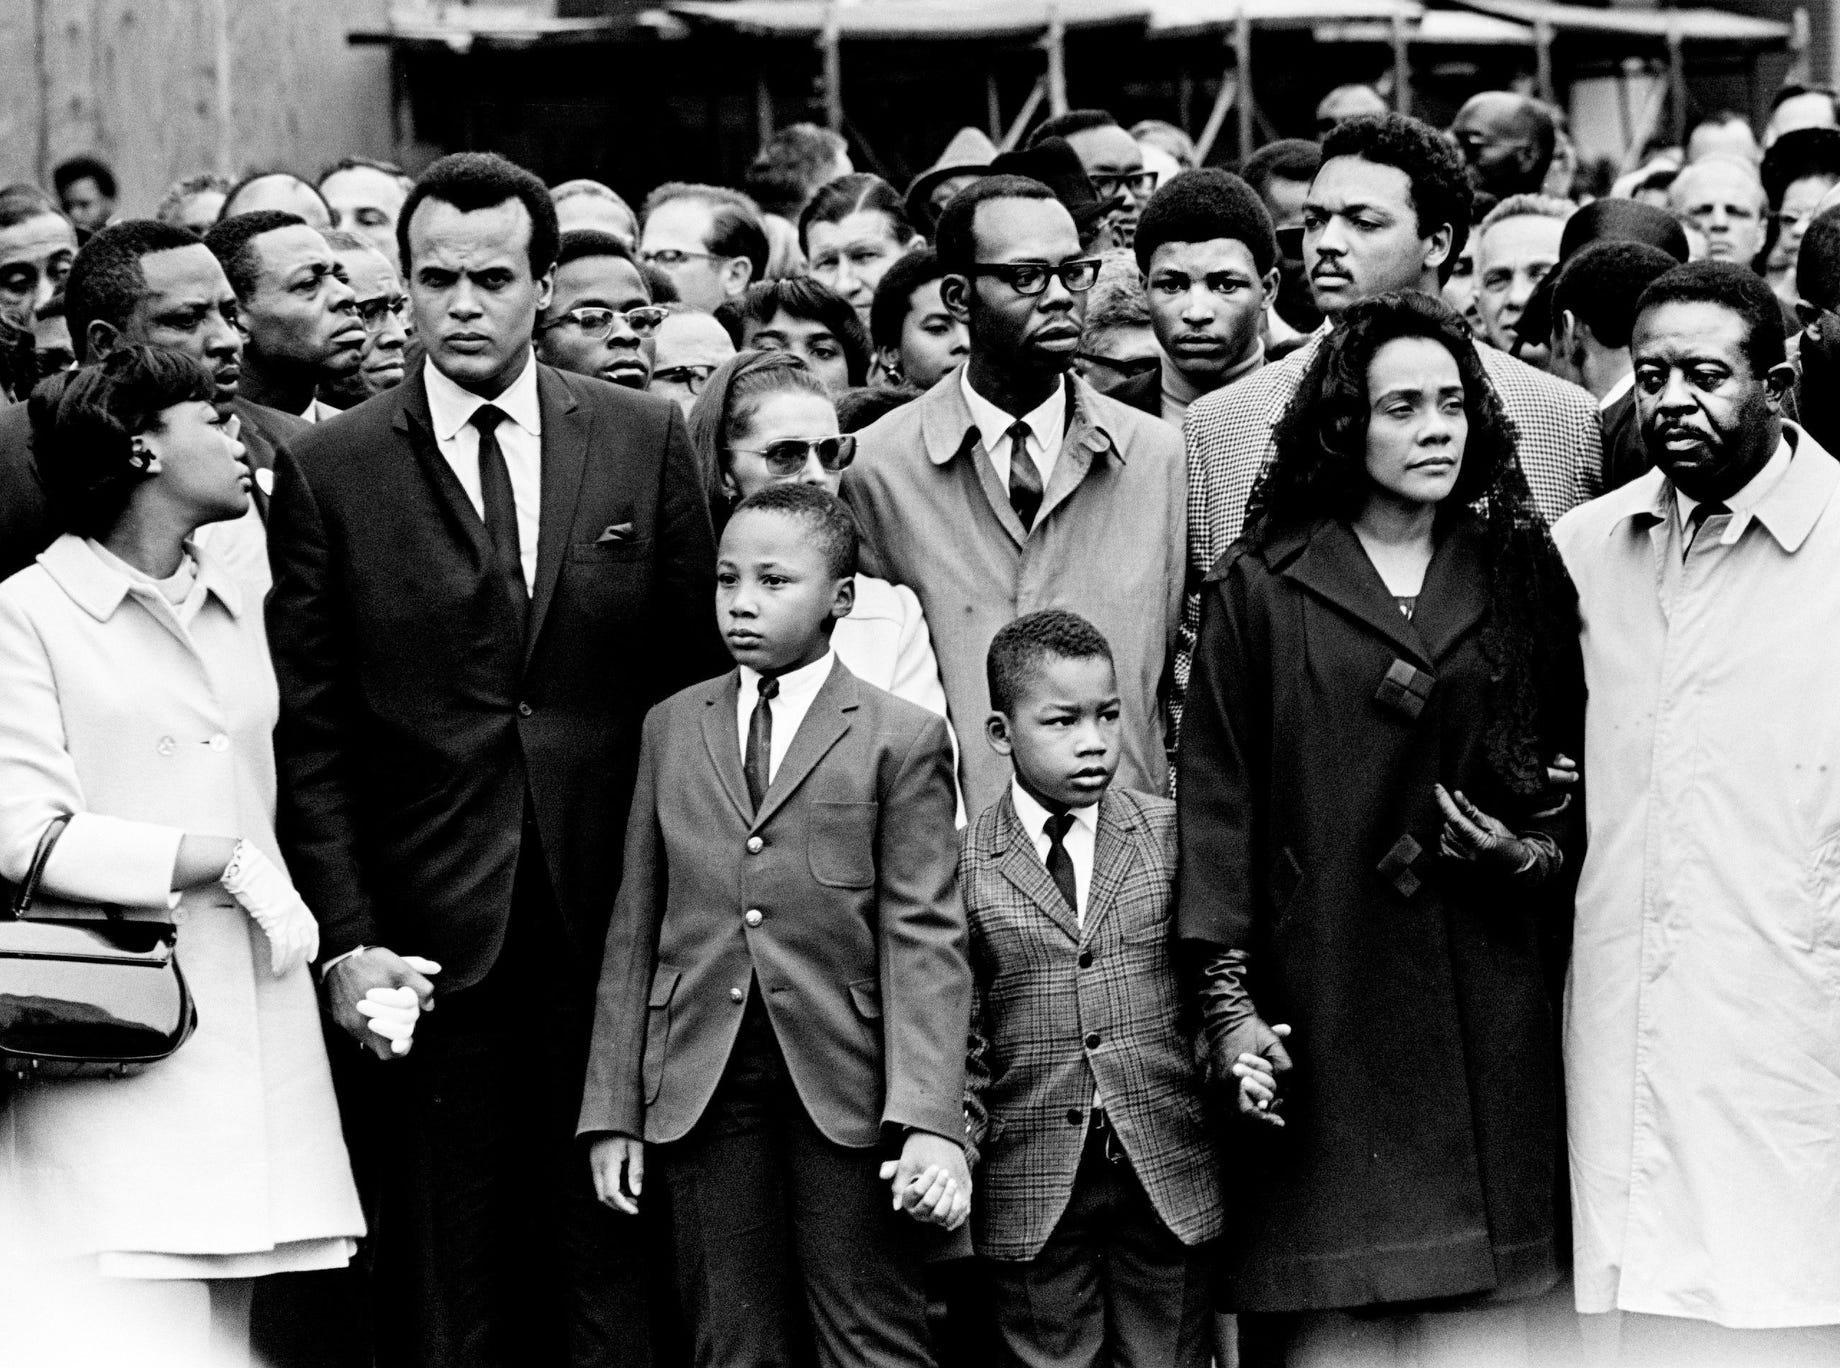 Getting ready for the silent march from Clayborn Temple to city hall in Memphis on April 8, 1968, are Yolanda King, left, Harry Belafonte, Martin Luther King III, Dexter King, Coretta Scott King and the Rev. Ralph Abernathy. Behind the widow is the Rev. Jesse Jackson.